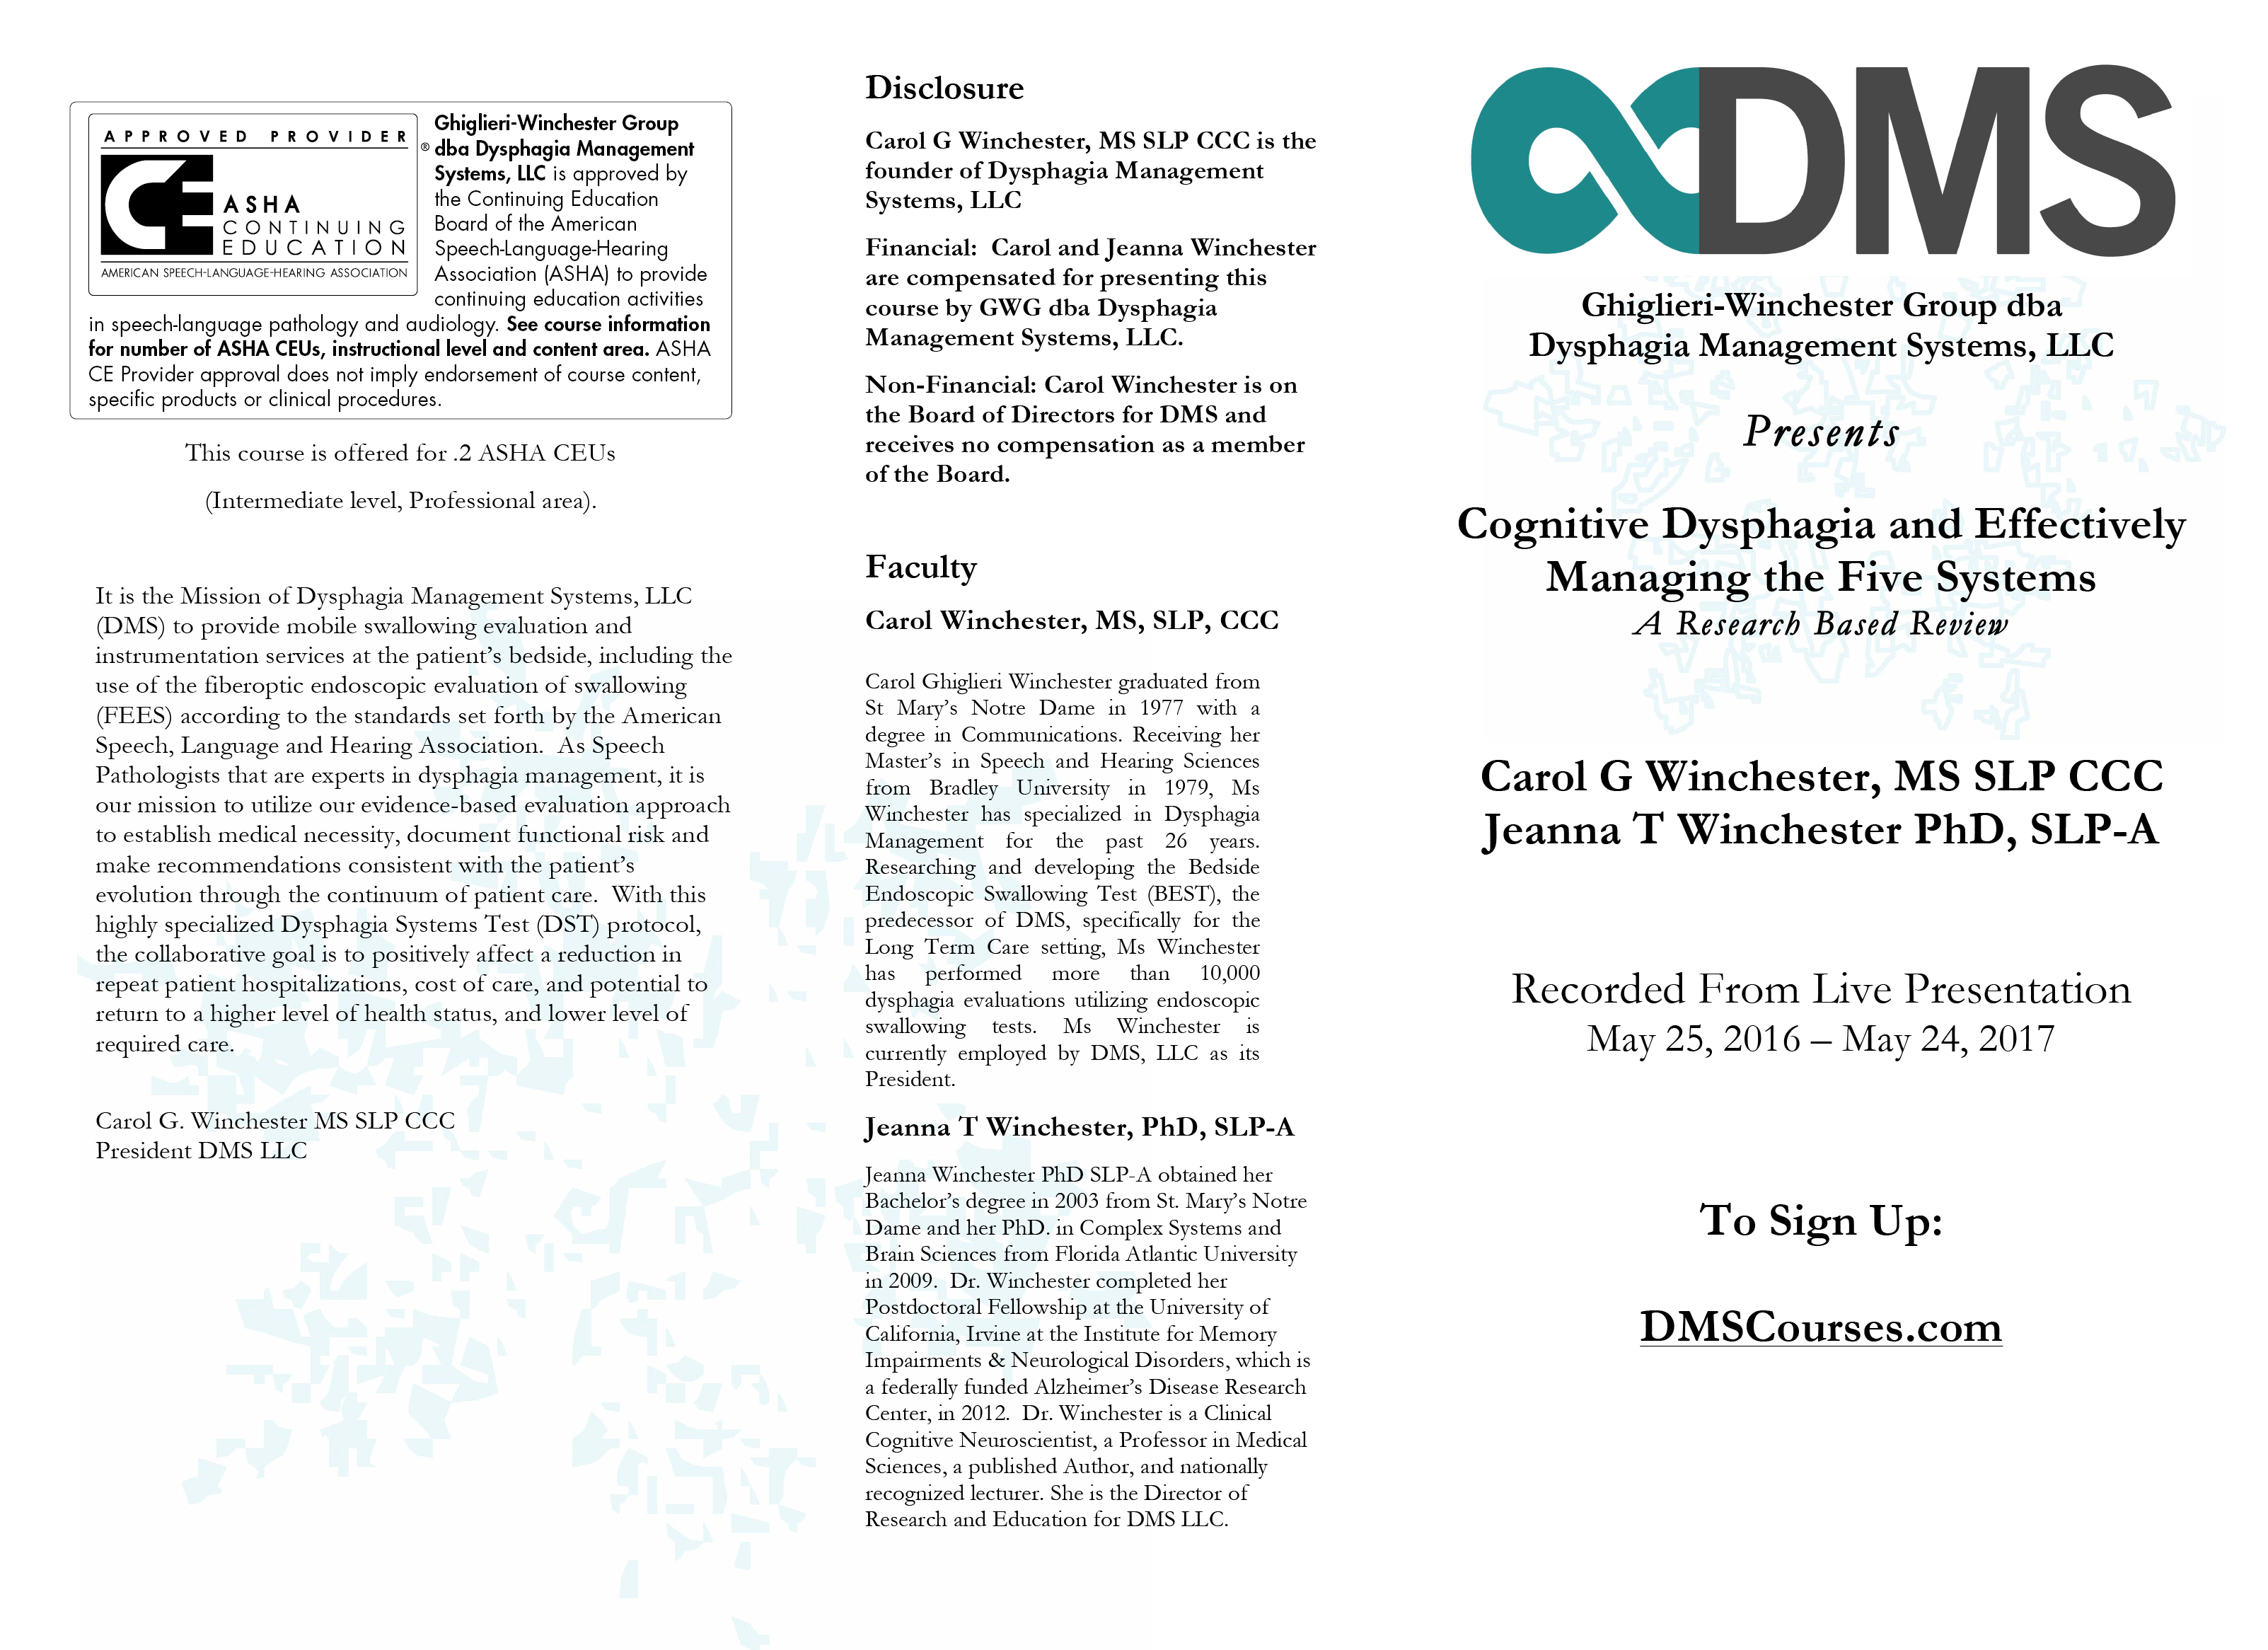 Final Approved GWG AAOQ2416 (R)-Cognitive Dysphagia and Effectively Managing the Five Systems of Dysphagia 1